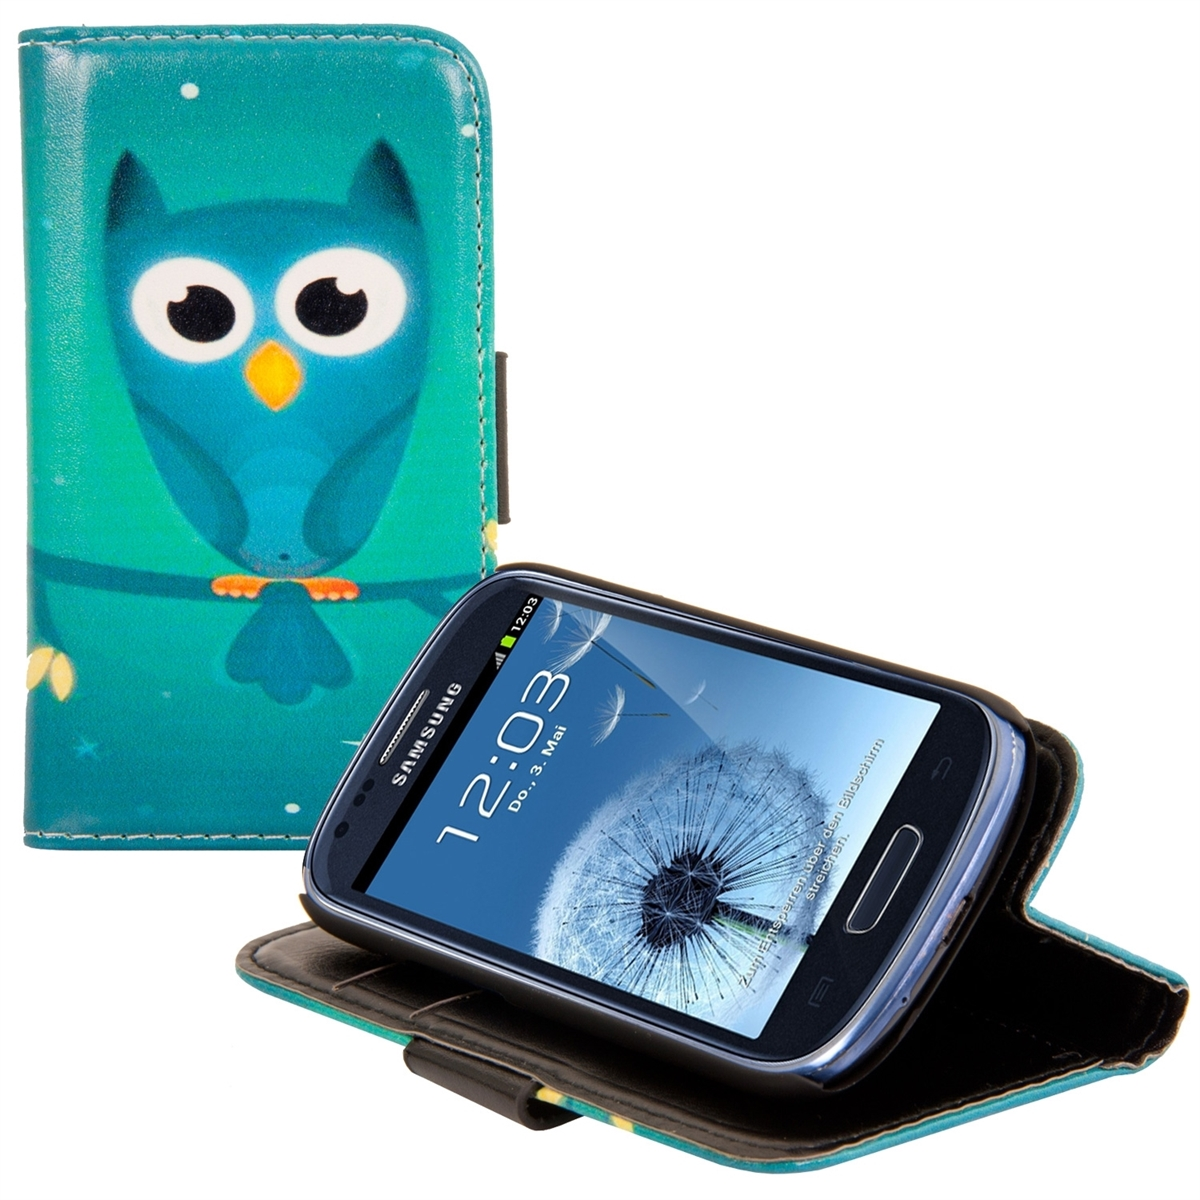 kwmobile Wallet Case for Samsung Galaxy S3 Mini i8190 - PU Leather Protective Flip Cover with Card Slots and Stand - Blue / Turquoise